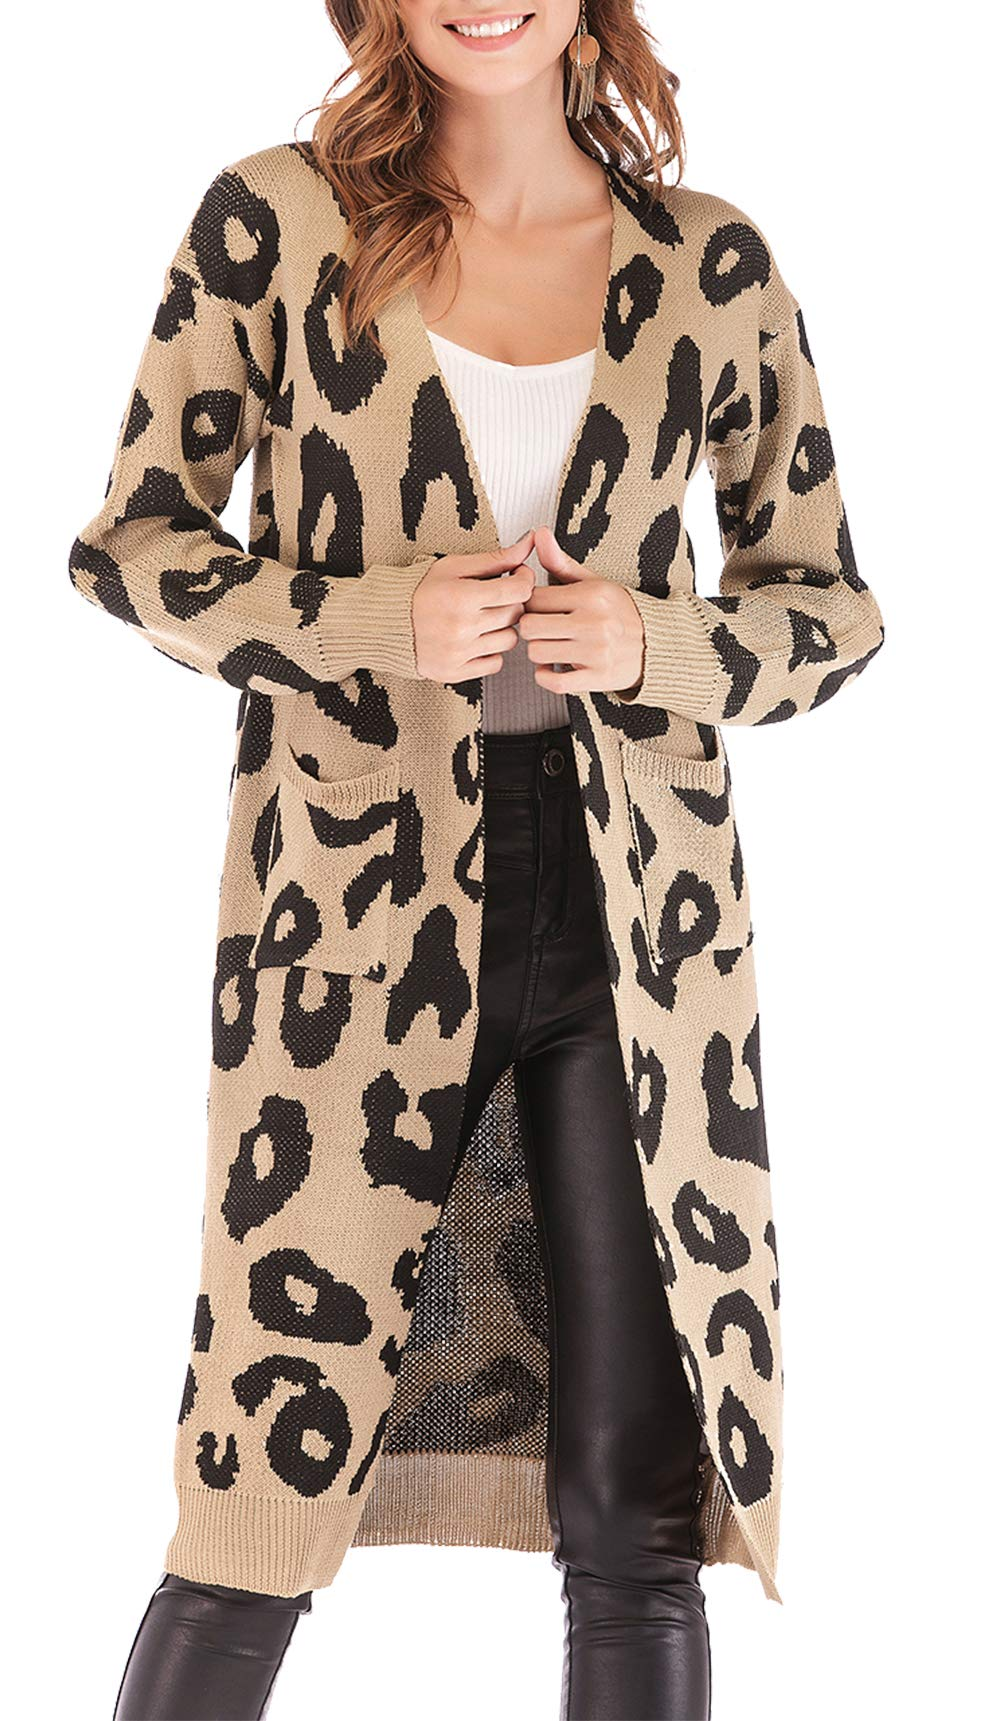 BTFBM Women Long Sleeve Open Front Leopard Knit Long Cardigan Casual Print Knitted Maxi Sweater Coat Outwear with Pockets (Khaki, Small) by BTFBM